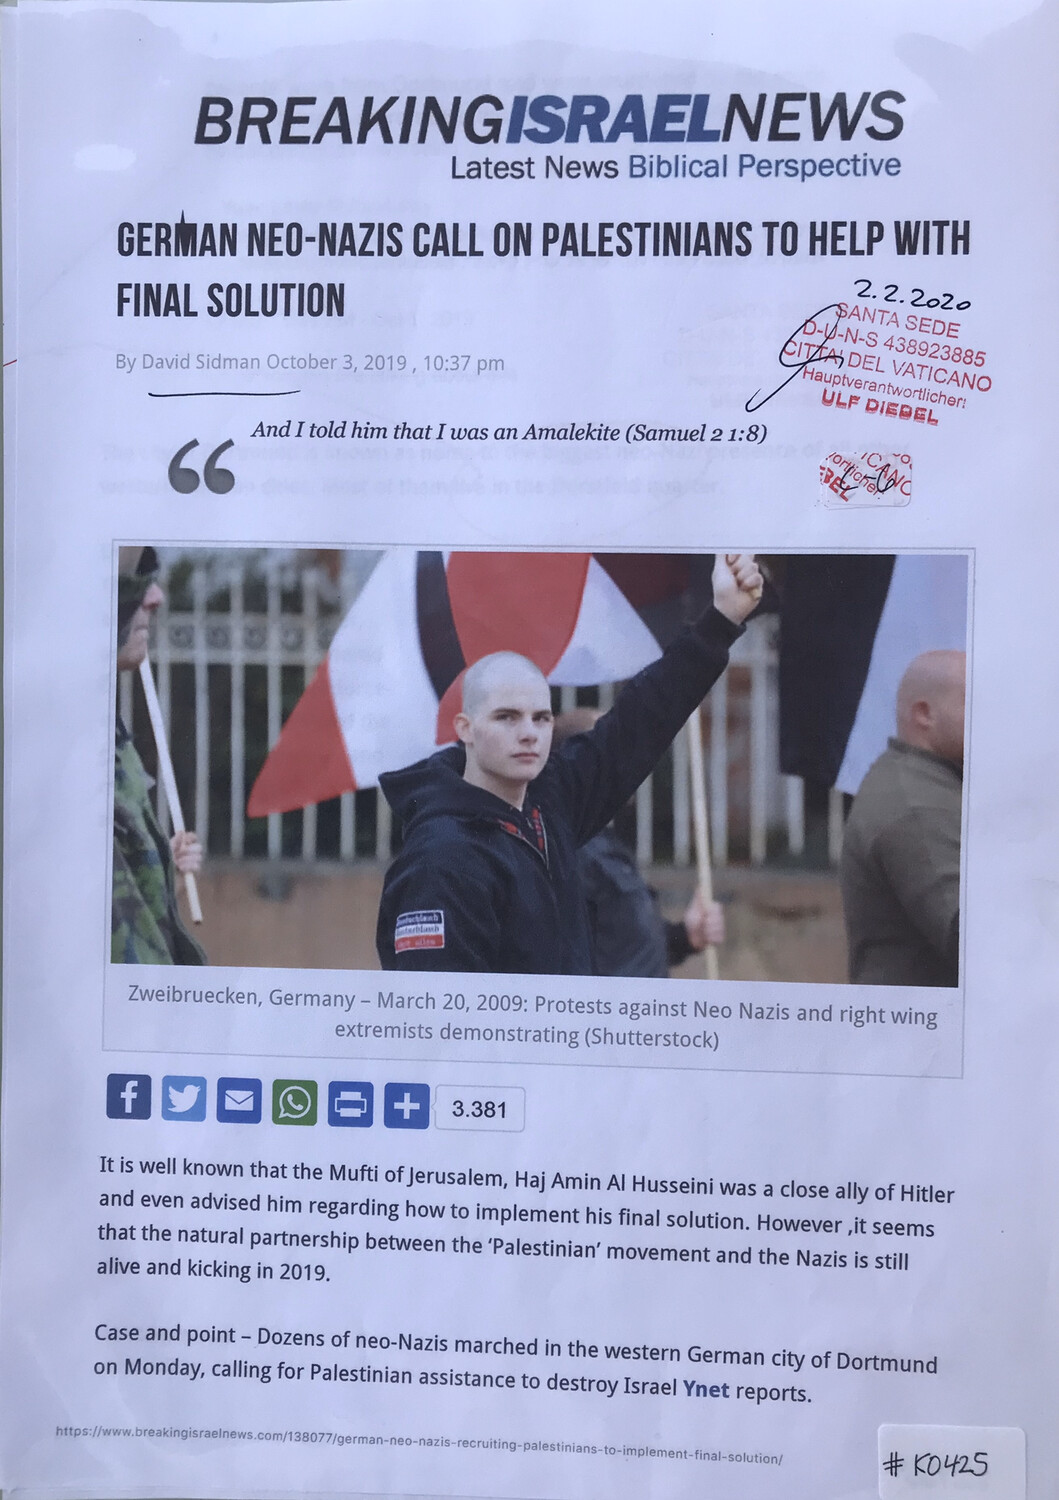 #K0425 l Breaking Israel News - German Neo-Nazis call on Palestinians to help with final solution by David Sidman